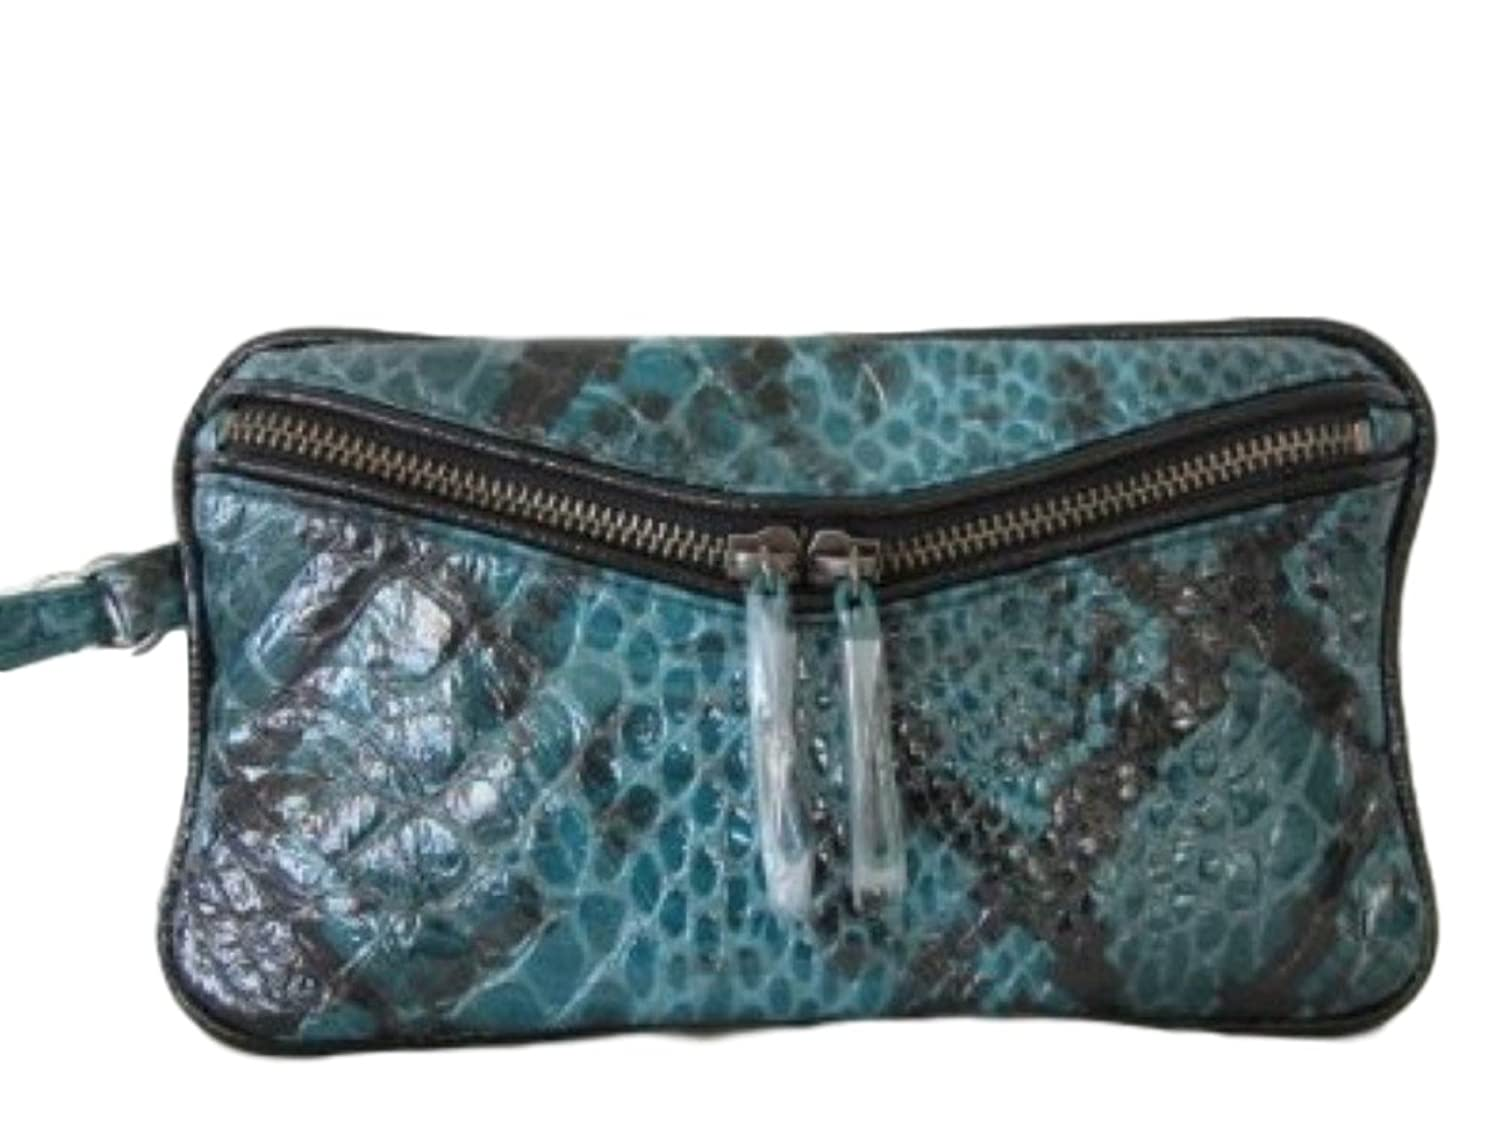 Steve Madden So130930 Turquoise Reptile Faux Leather Wristlet Clutch